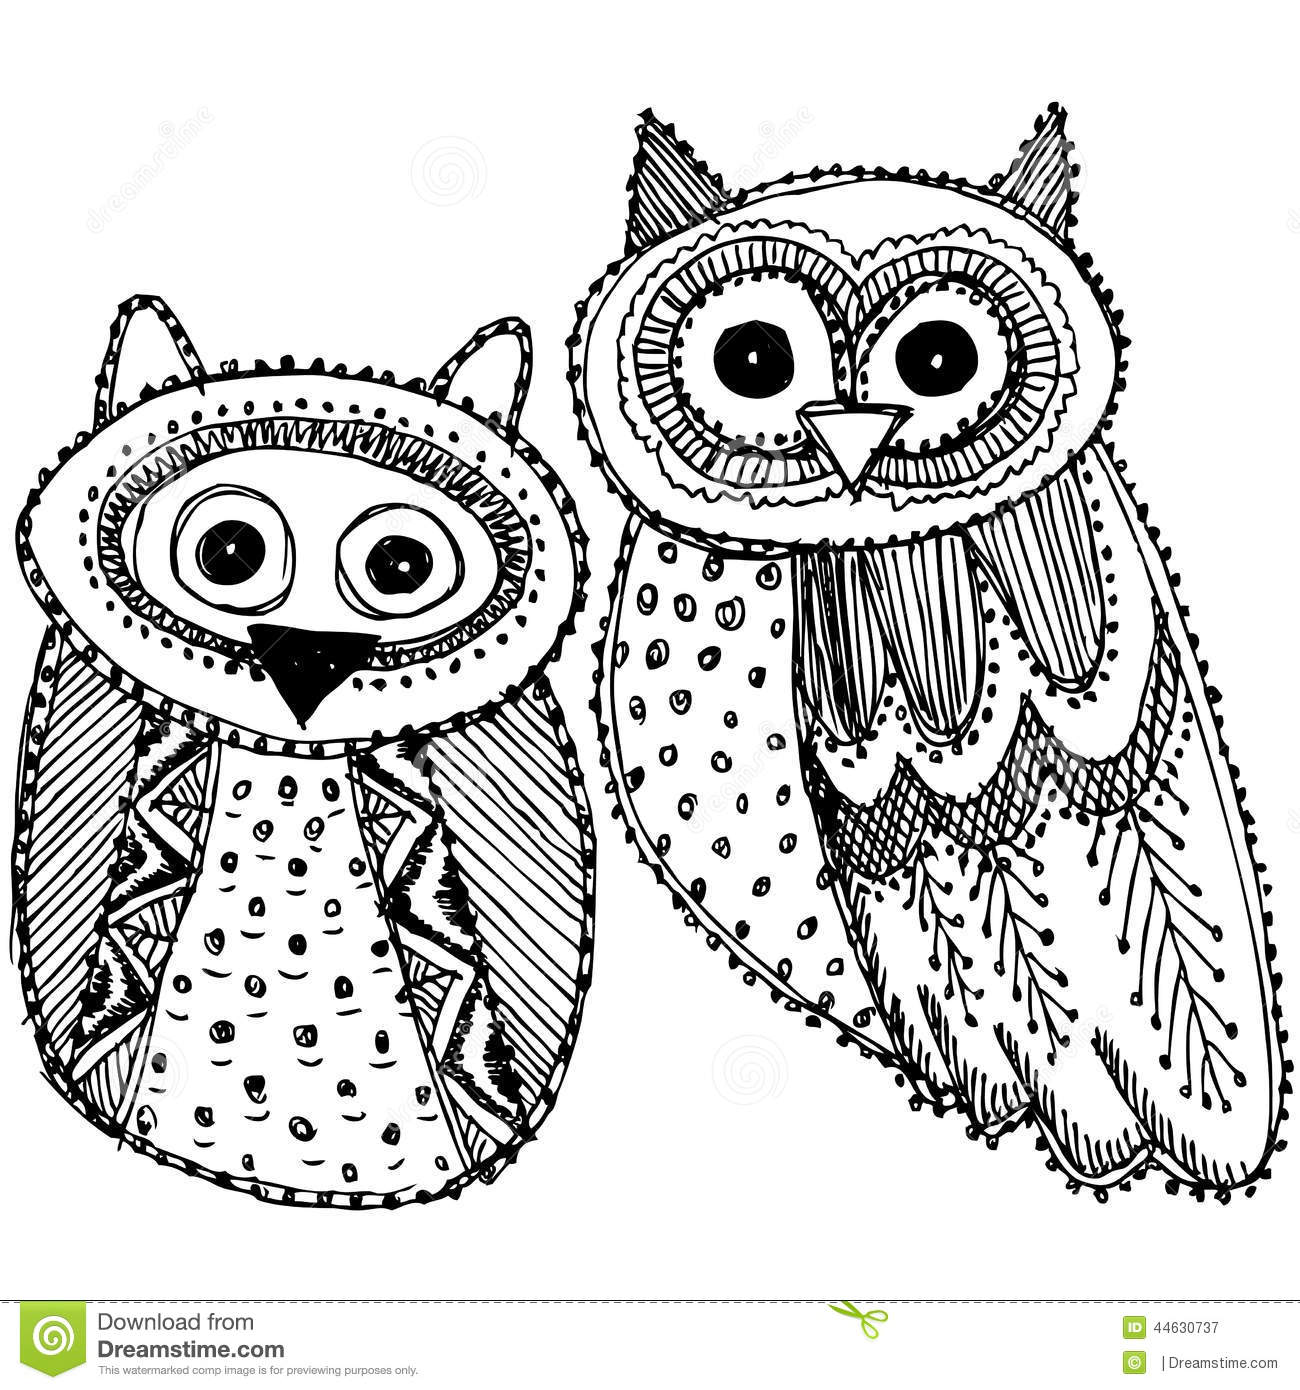 Decorative Hand Drawn Cute Owl Sketch Doodle Black And